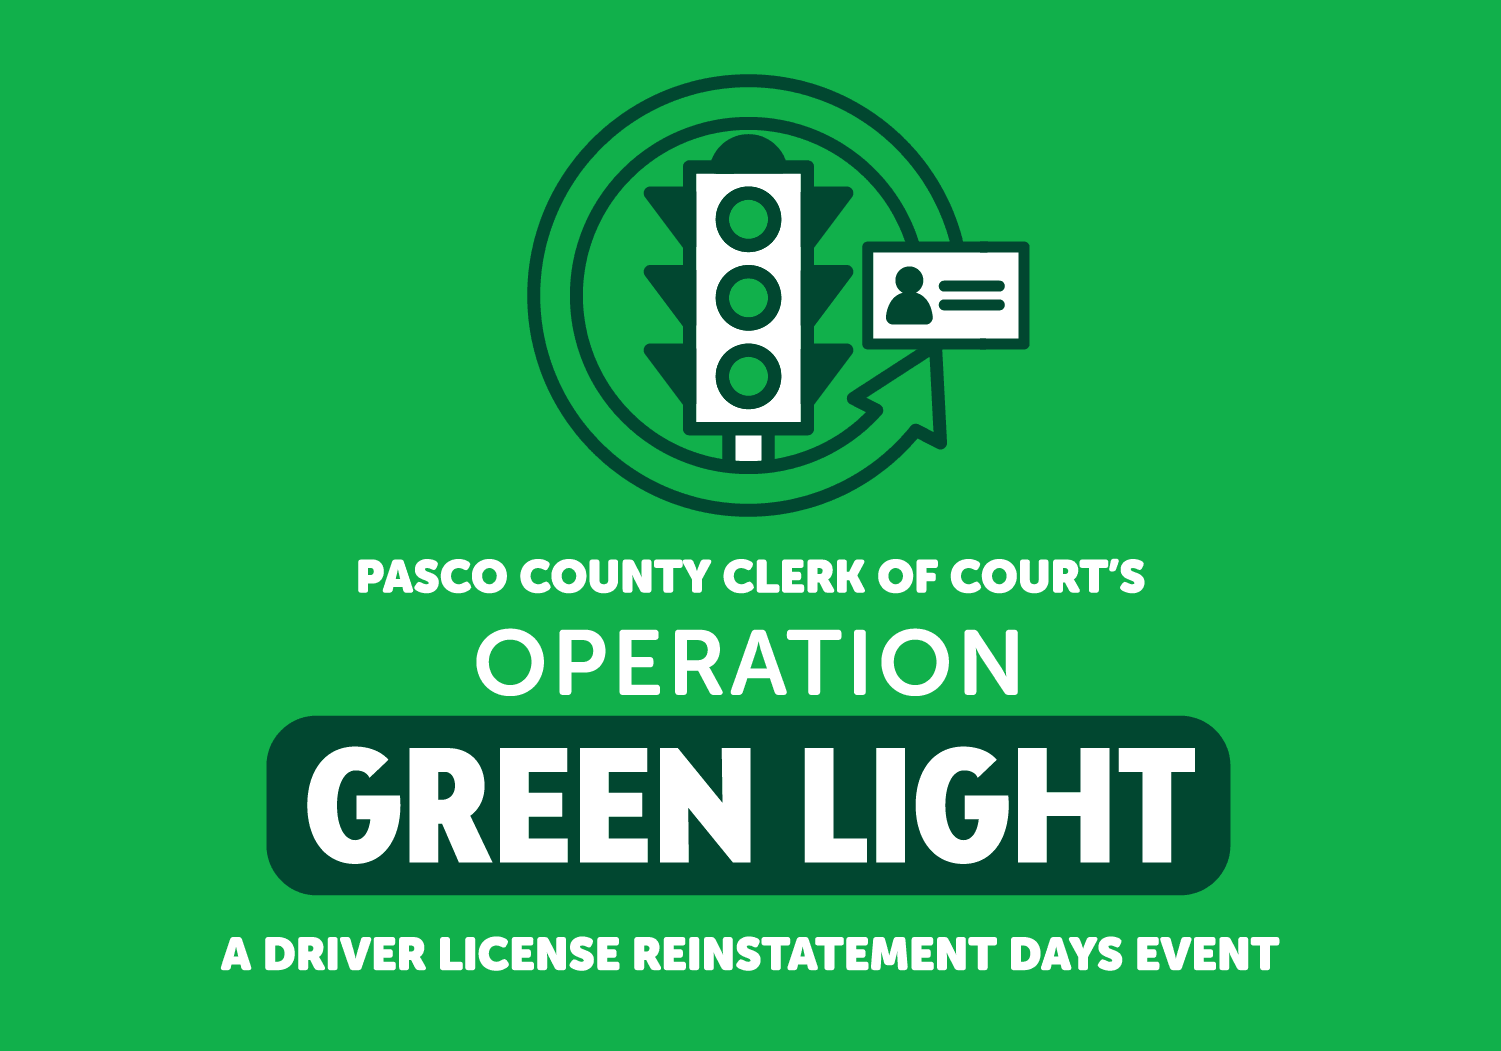 Traffic light on green background, block letters announcing Operation Green Light in Pasco County